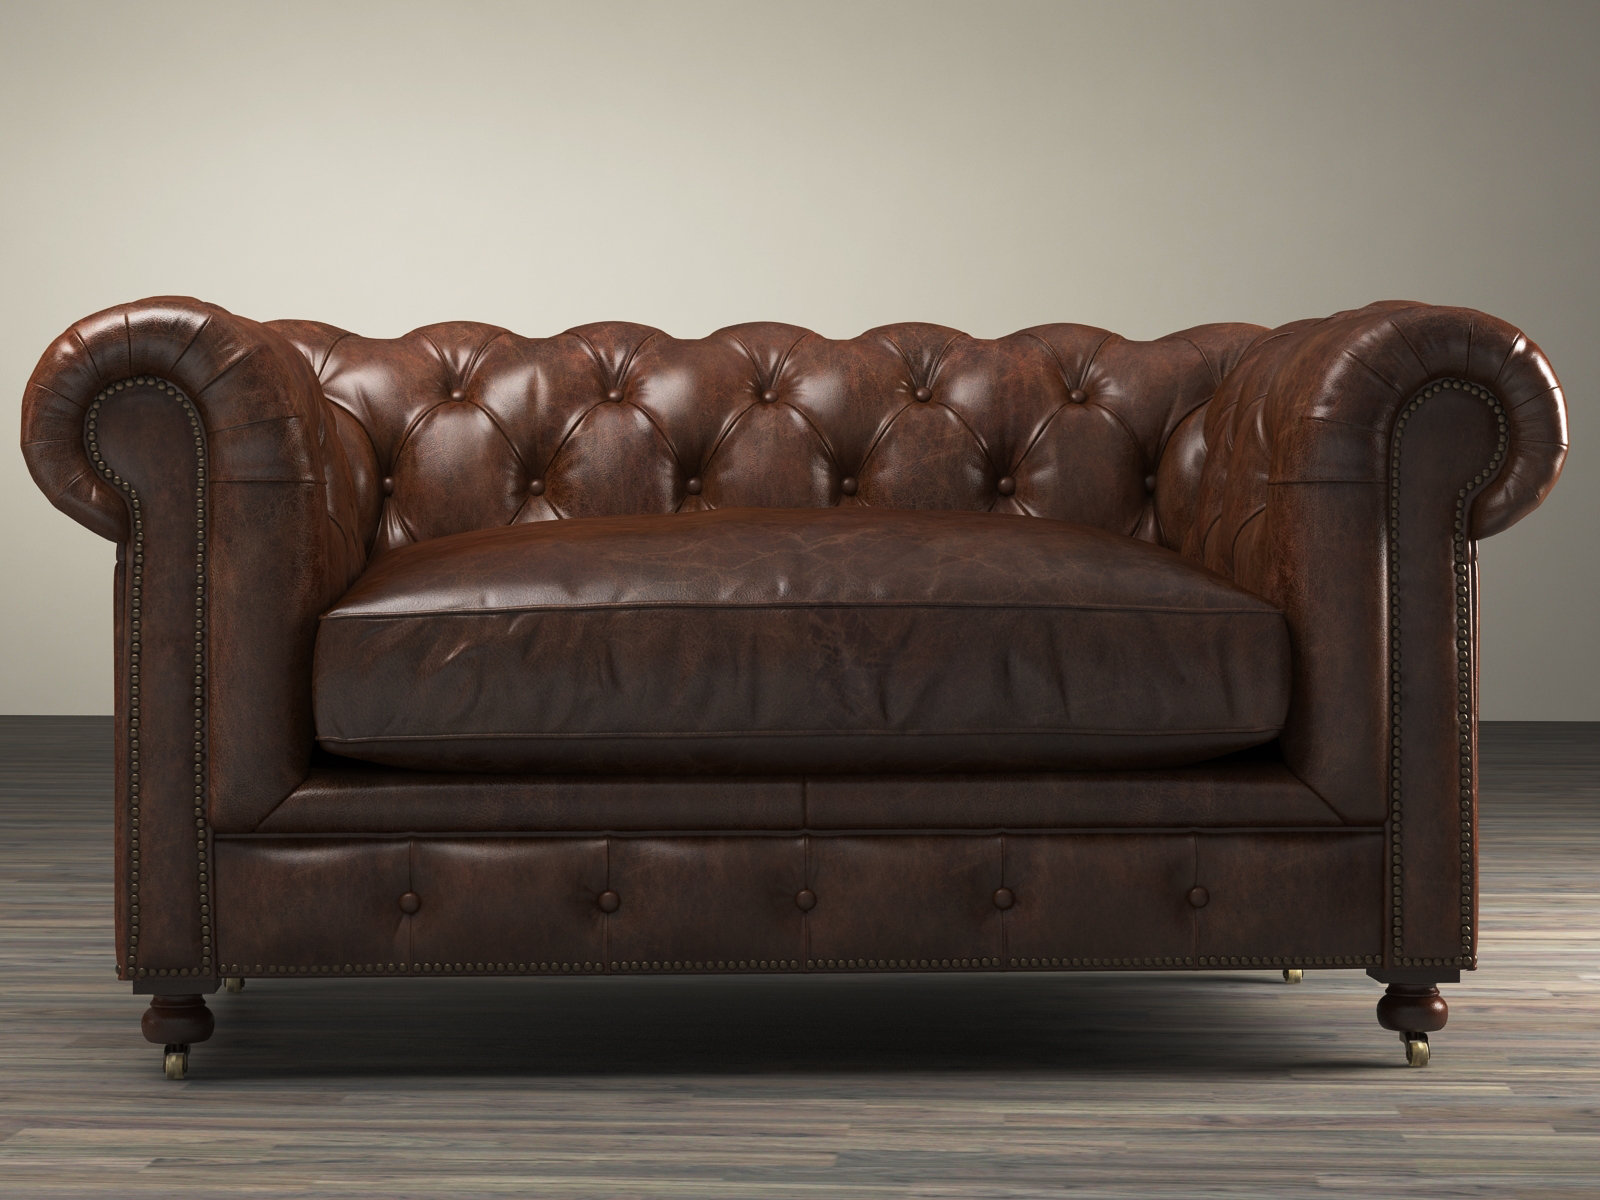 restoration hardware kensington sofa leather pipe set all sofas 2 seater 60 by